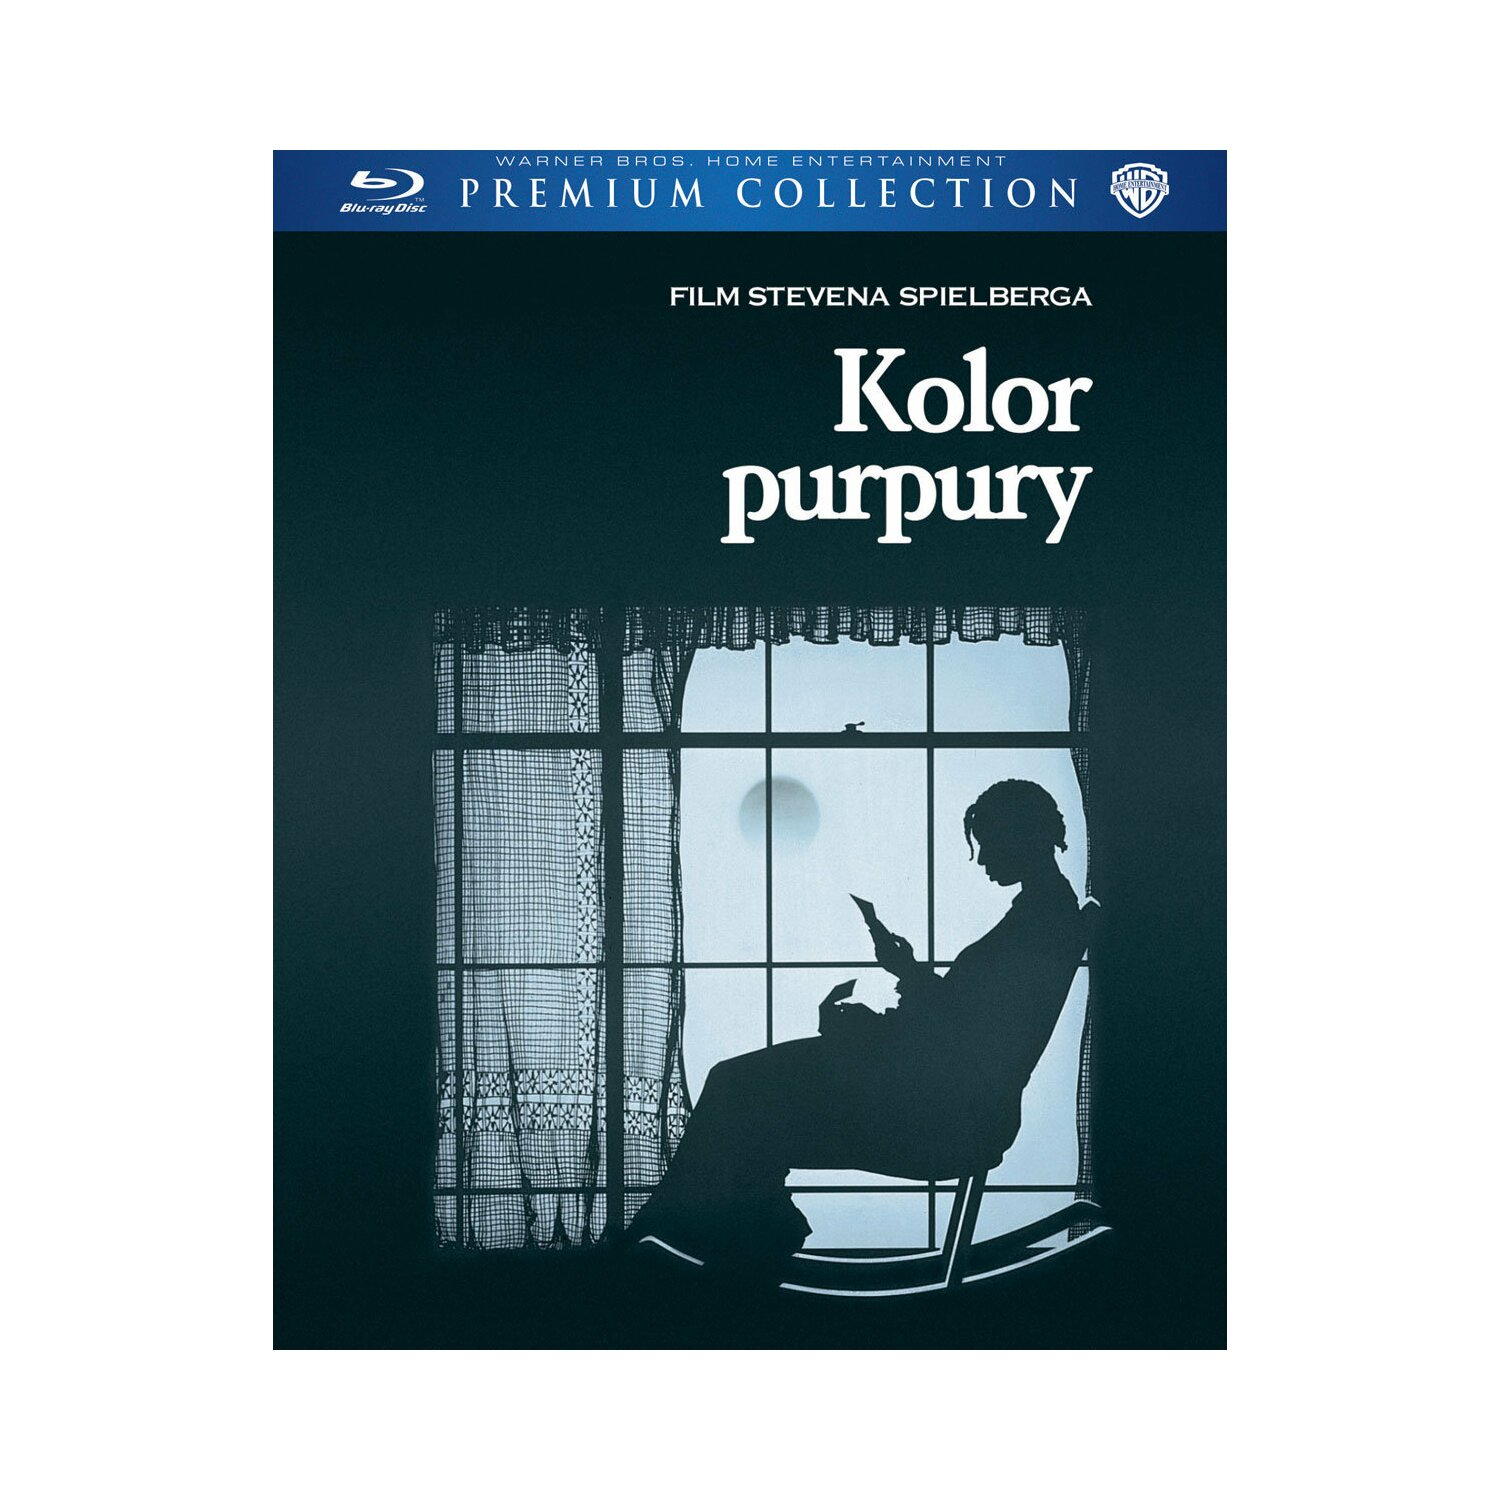 Kolor purpury (BD) Premium Collection